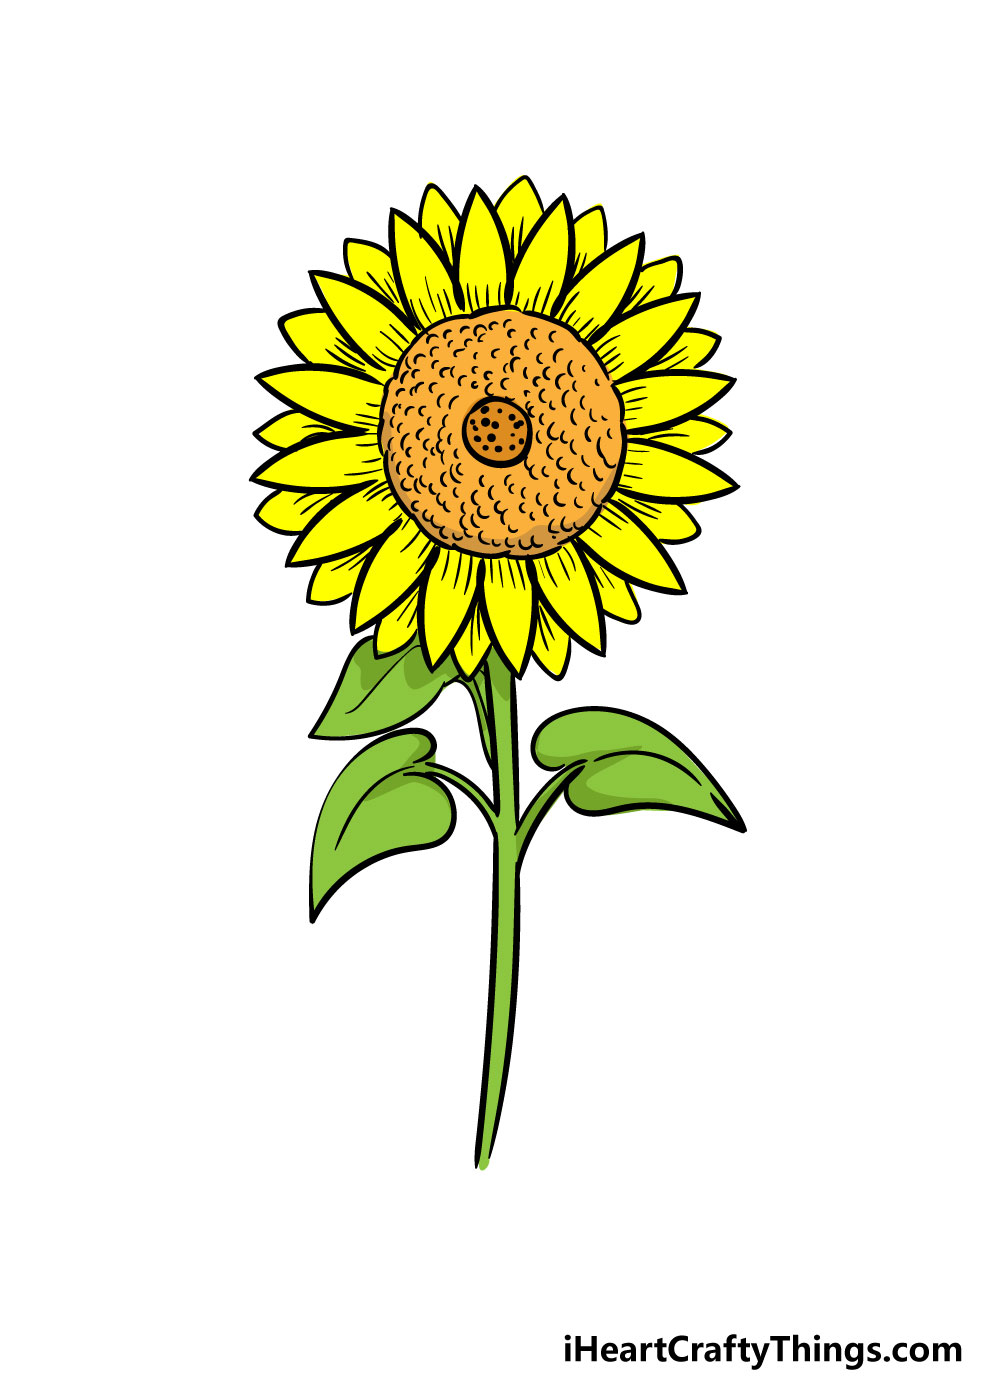 sunflower drawing step 10